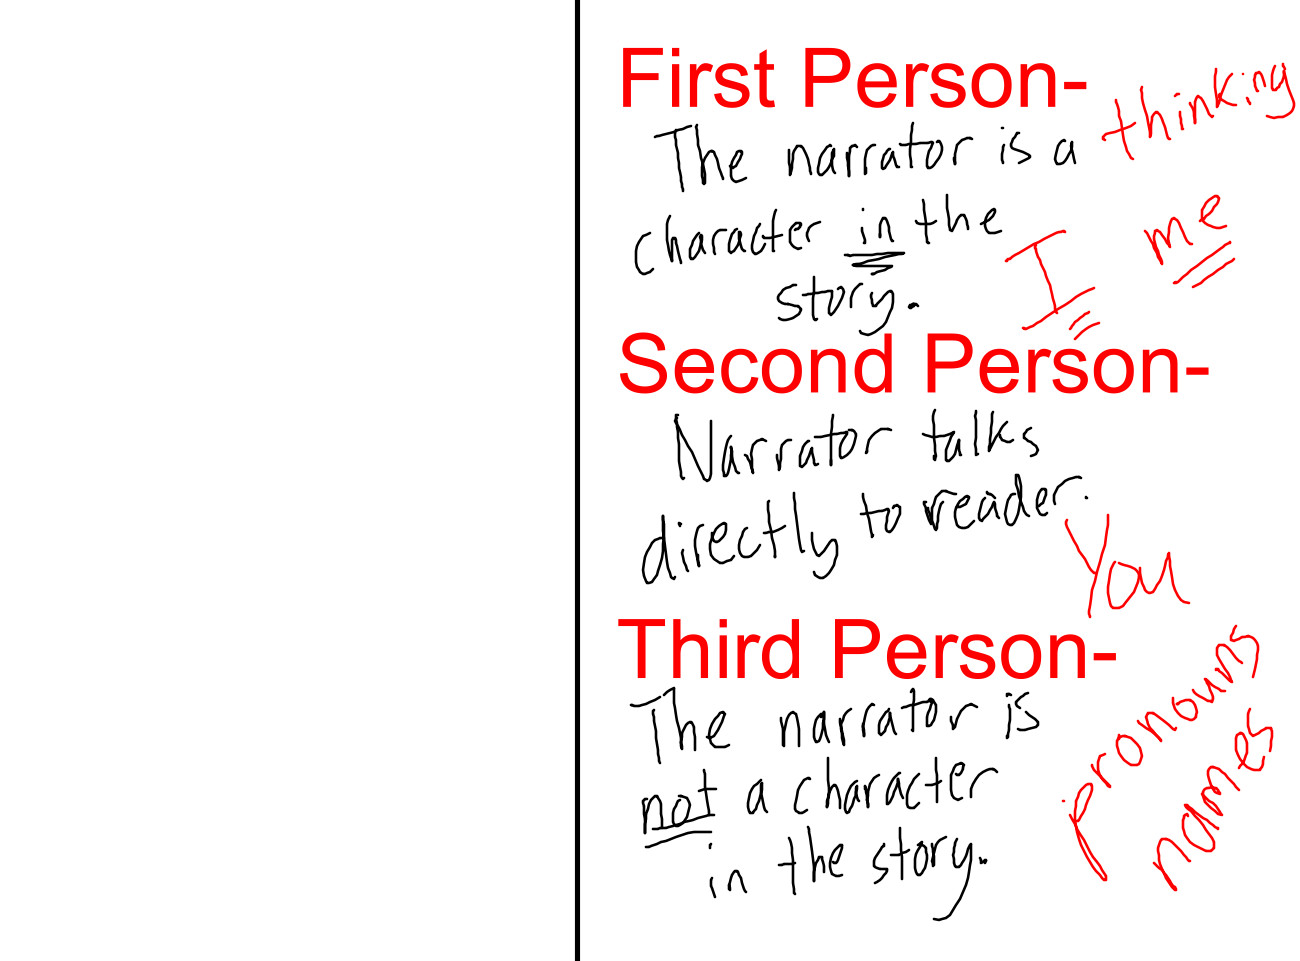 writing essays in the third person Narration is the use of a written or spoken commentary to convey a story to an  audience  in the third-person narrative mode, characters are referred to by the  narrator as he, she, or they, but never as i or we  an essay in method.